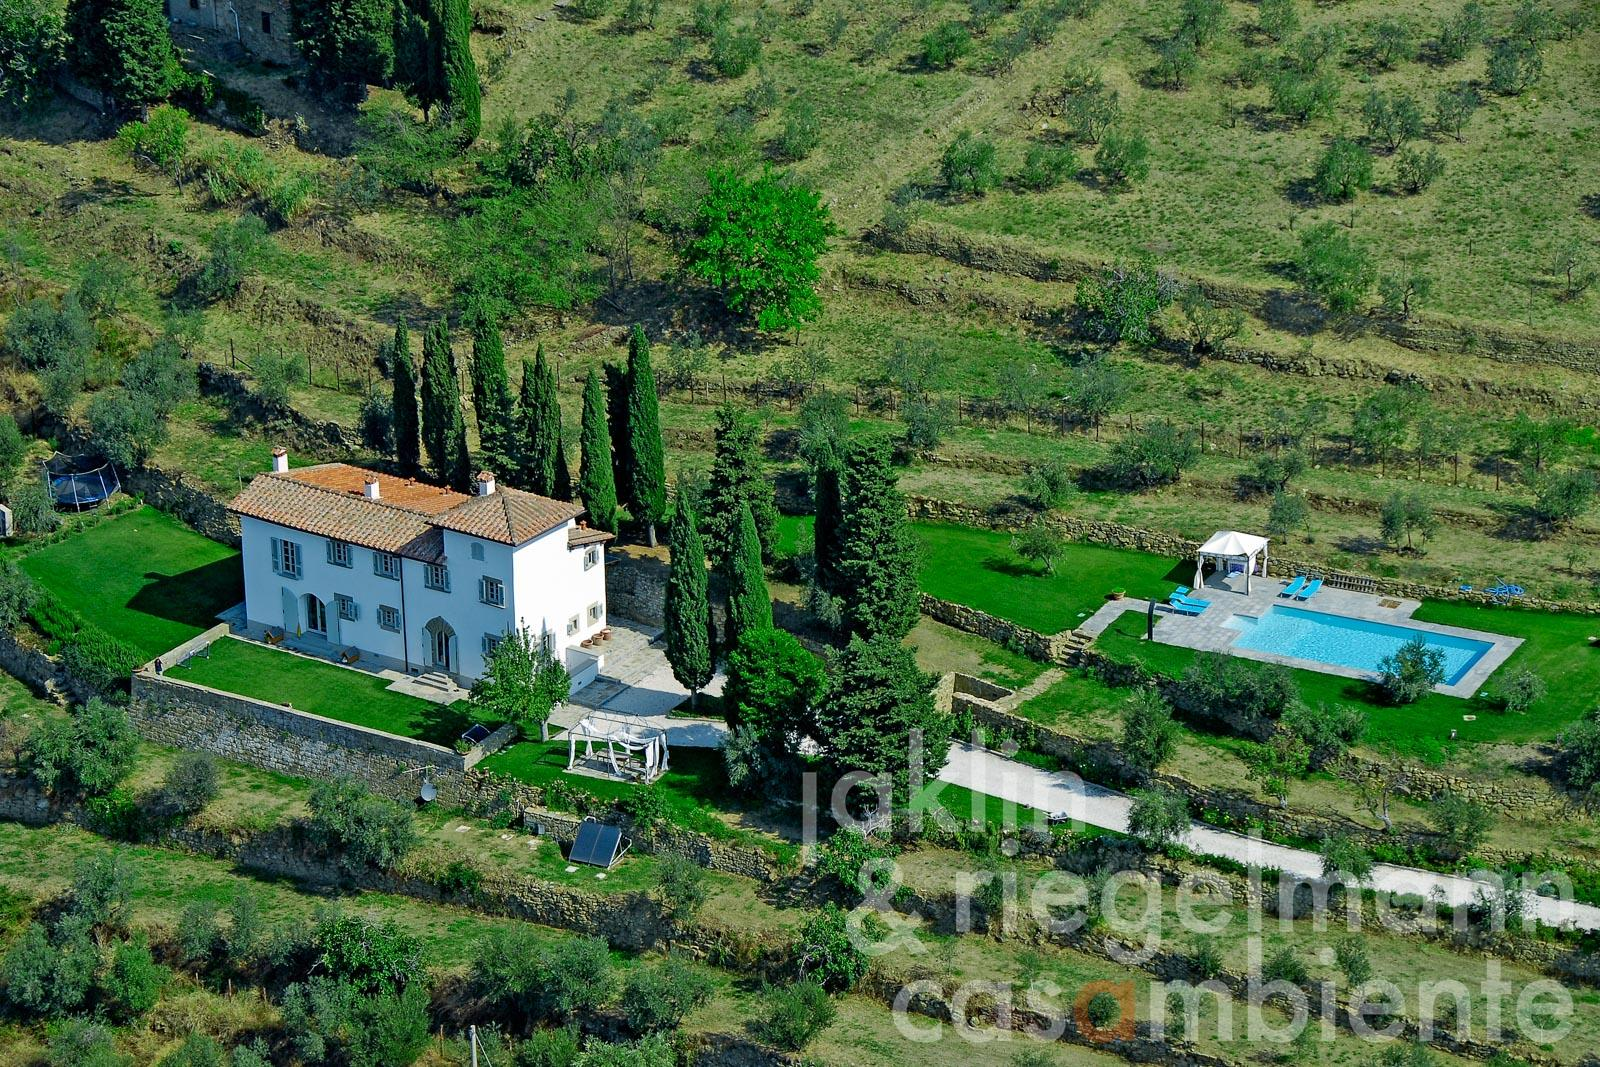 The noble Tuscan villa for sale with swimming pool and olive grove in panoramic setting close to Florence